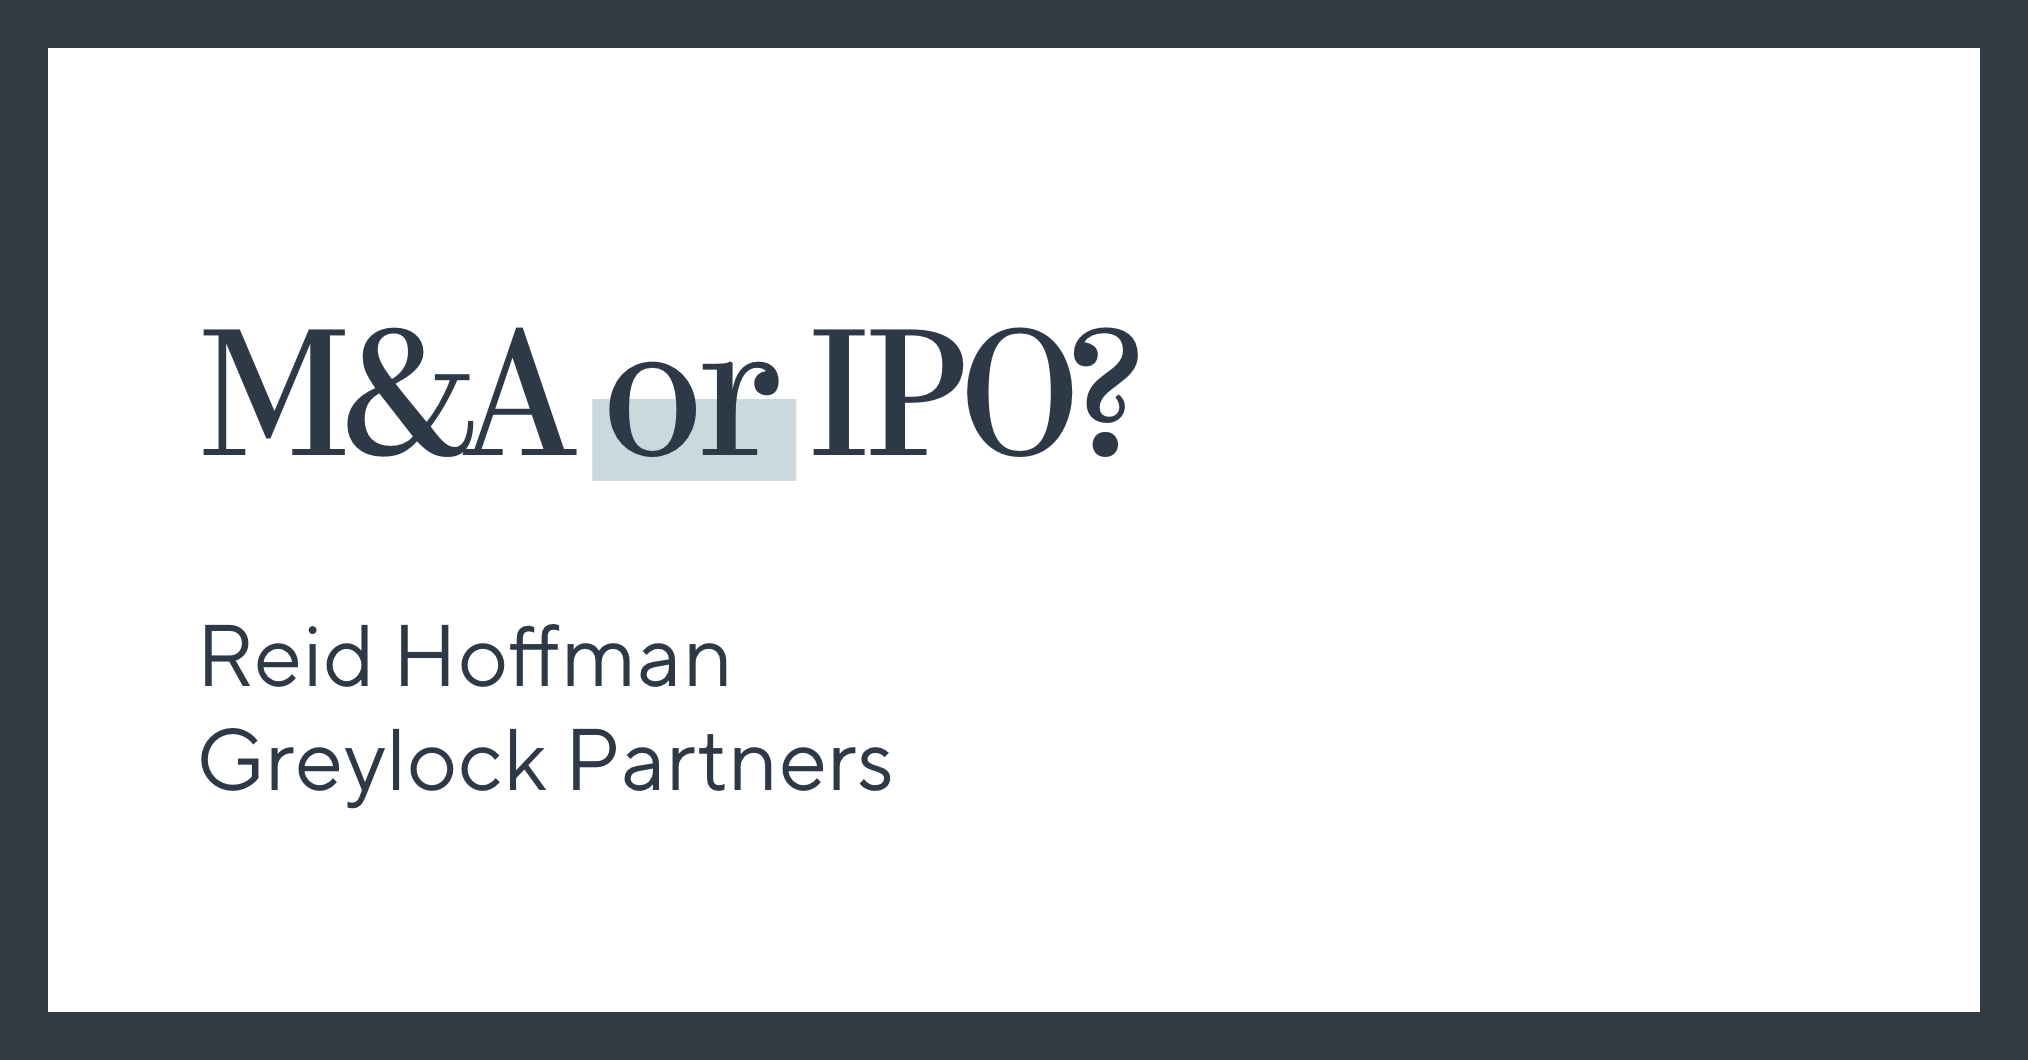 M&A or IPO?